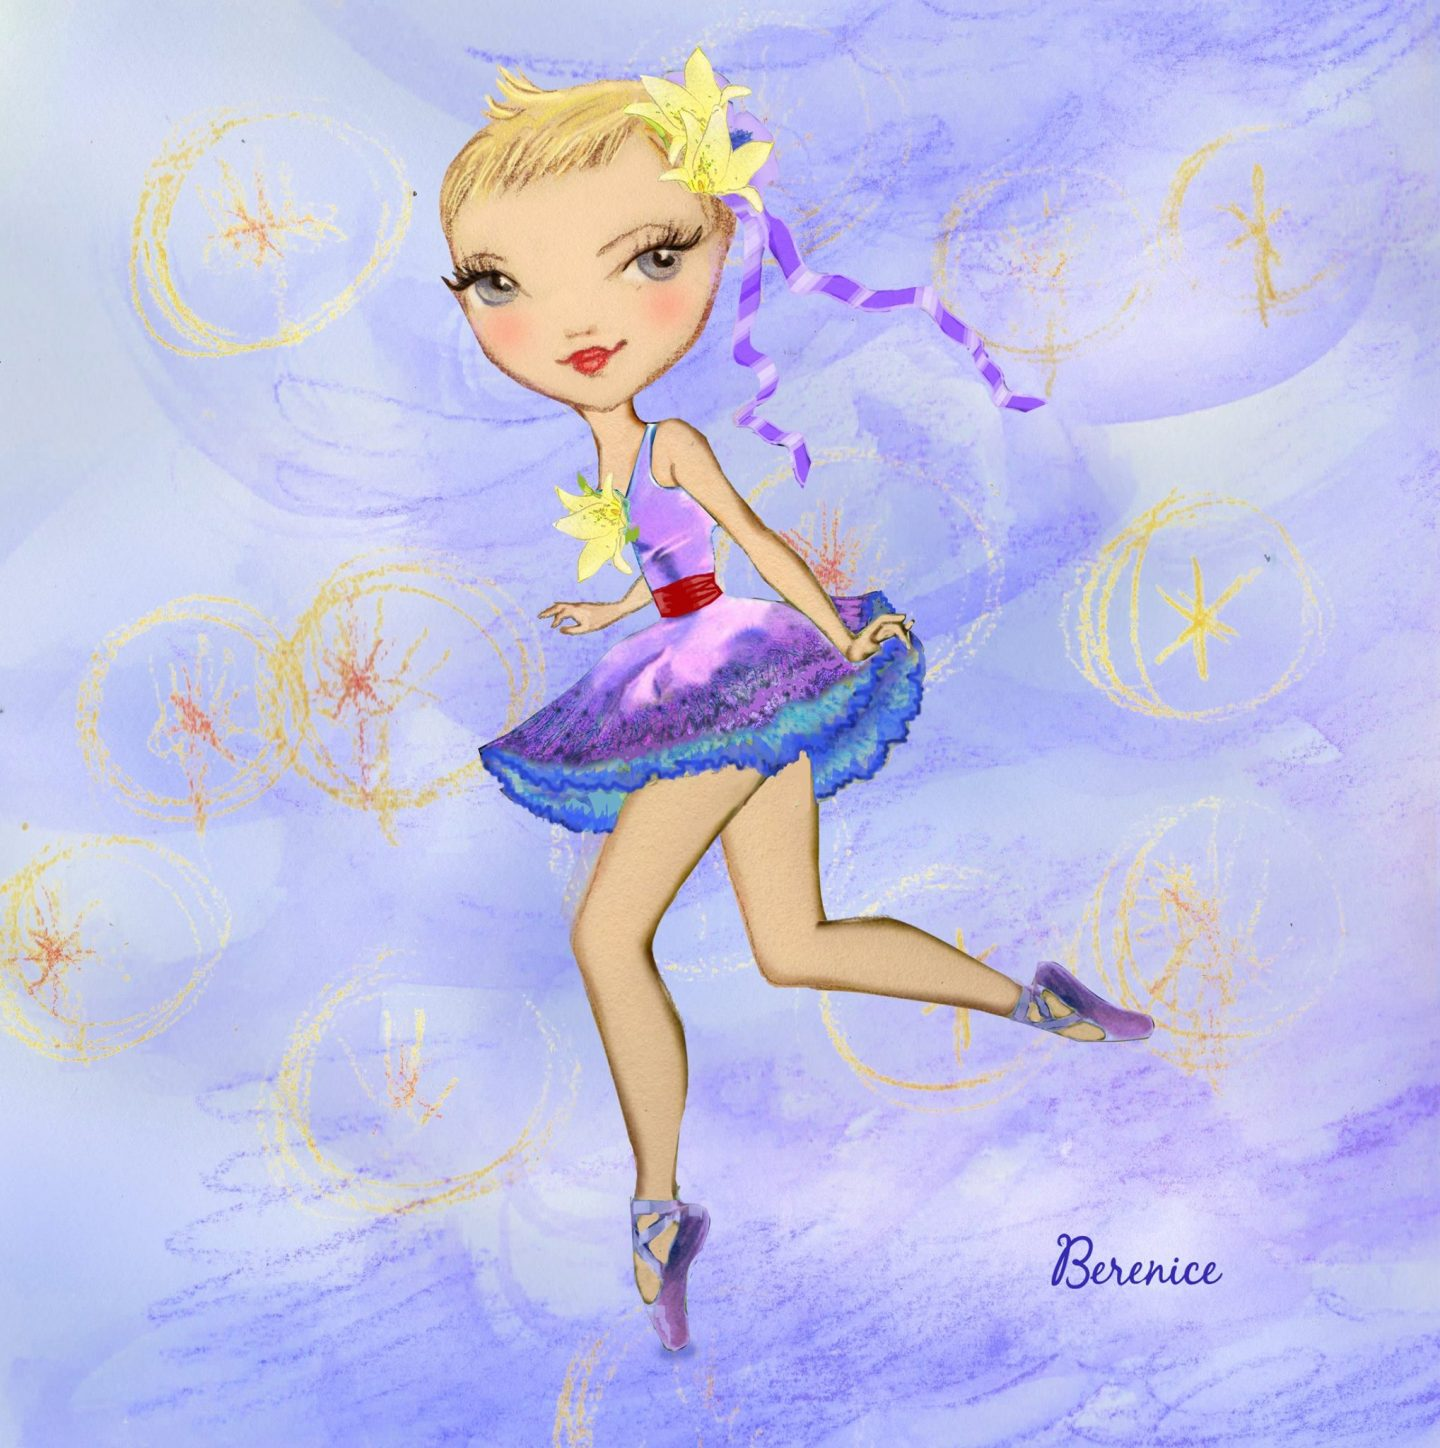 'A Magical Day' illustration for Georgina Butler by Ballet Papier artist Berenice. An illustration of Georgina dressed in a purple dress and matching purple pointe shoes. She is wearing a yellow flower pinned to the bodice of her dress and a second flower, with a trailing purple ribbon, is in her short blonde-brown hair. She is playfully standing en pointe on one leg, casually kicking the other leg out behind her, and smiling at the viewer.